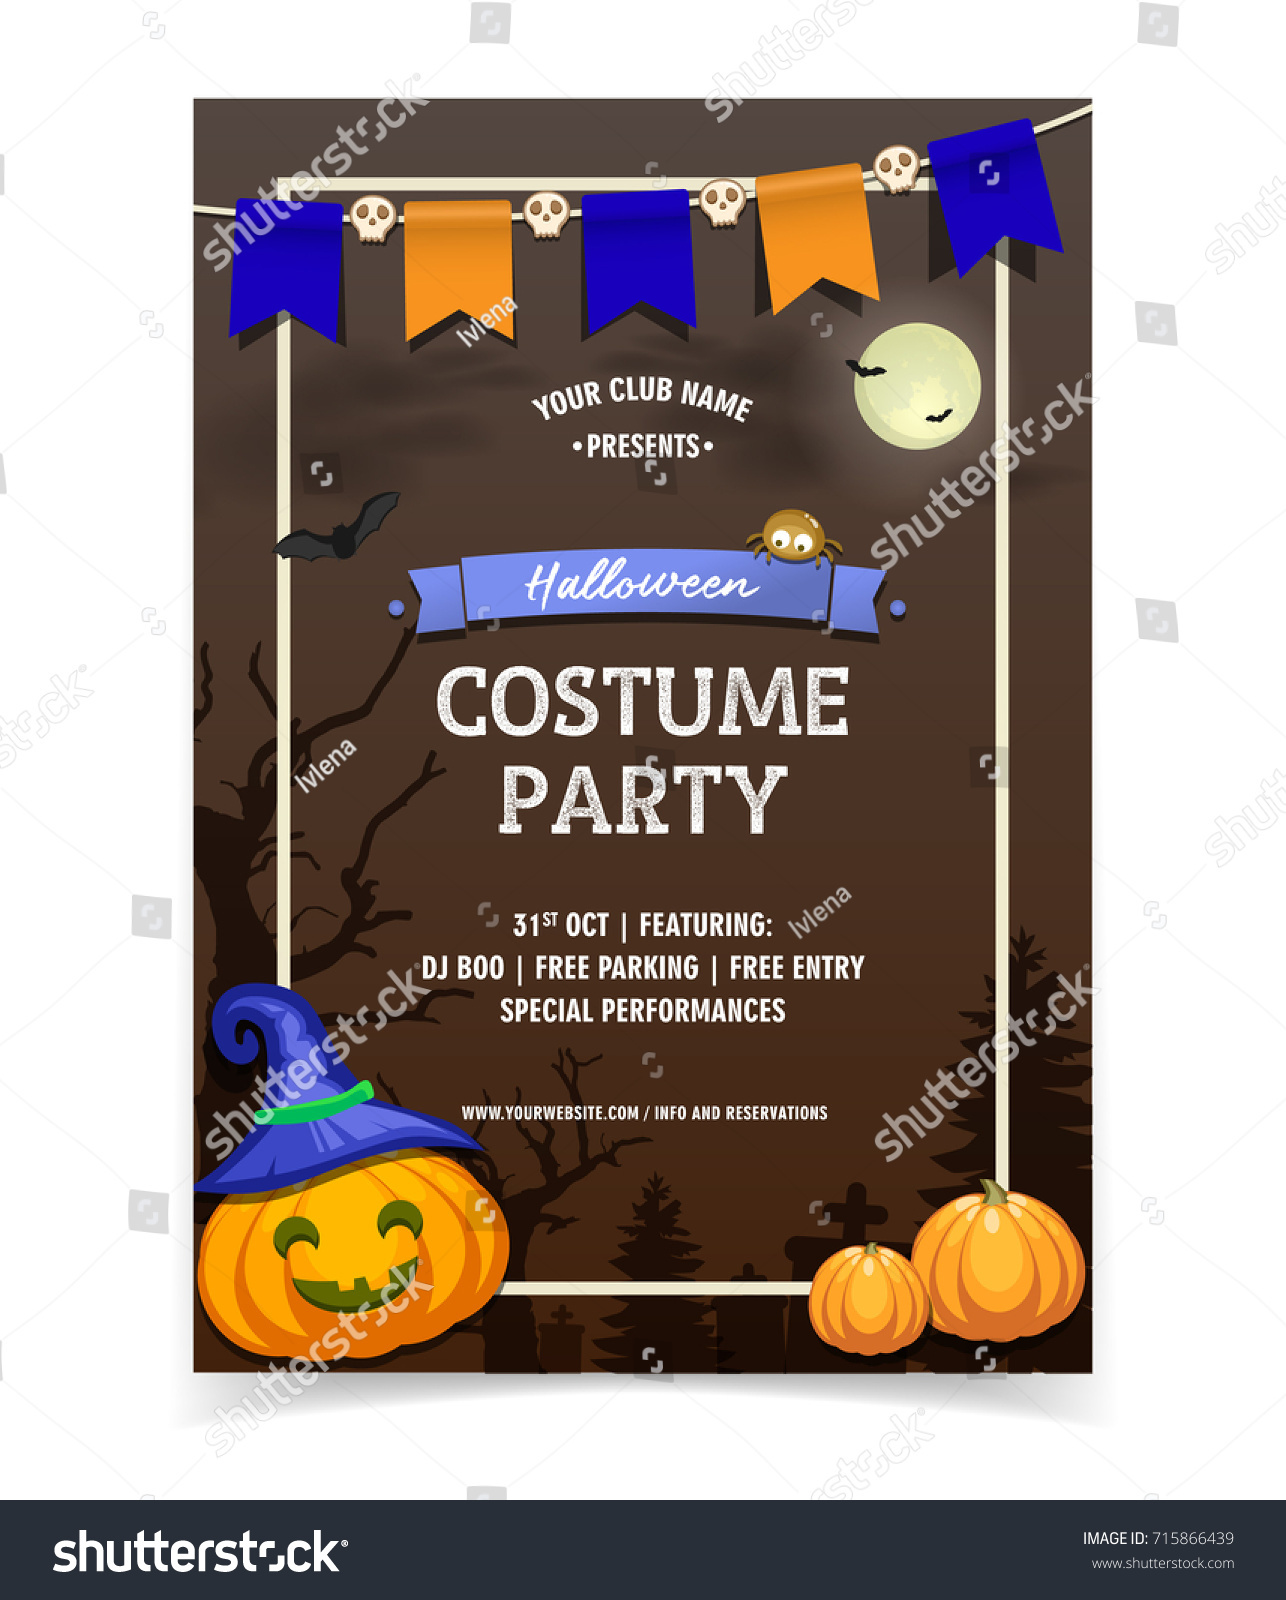 Halloween Flyer Template Costume Party Invitation Stock Vector - Party invitation template: halloween costume party flyer